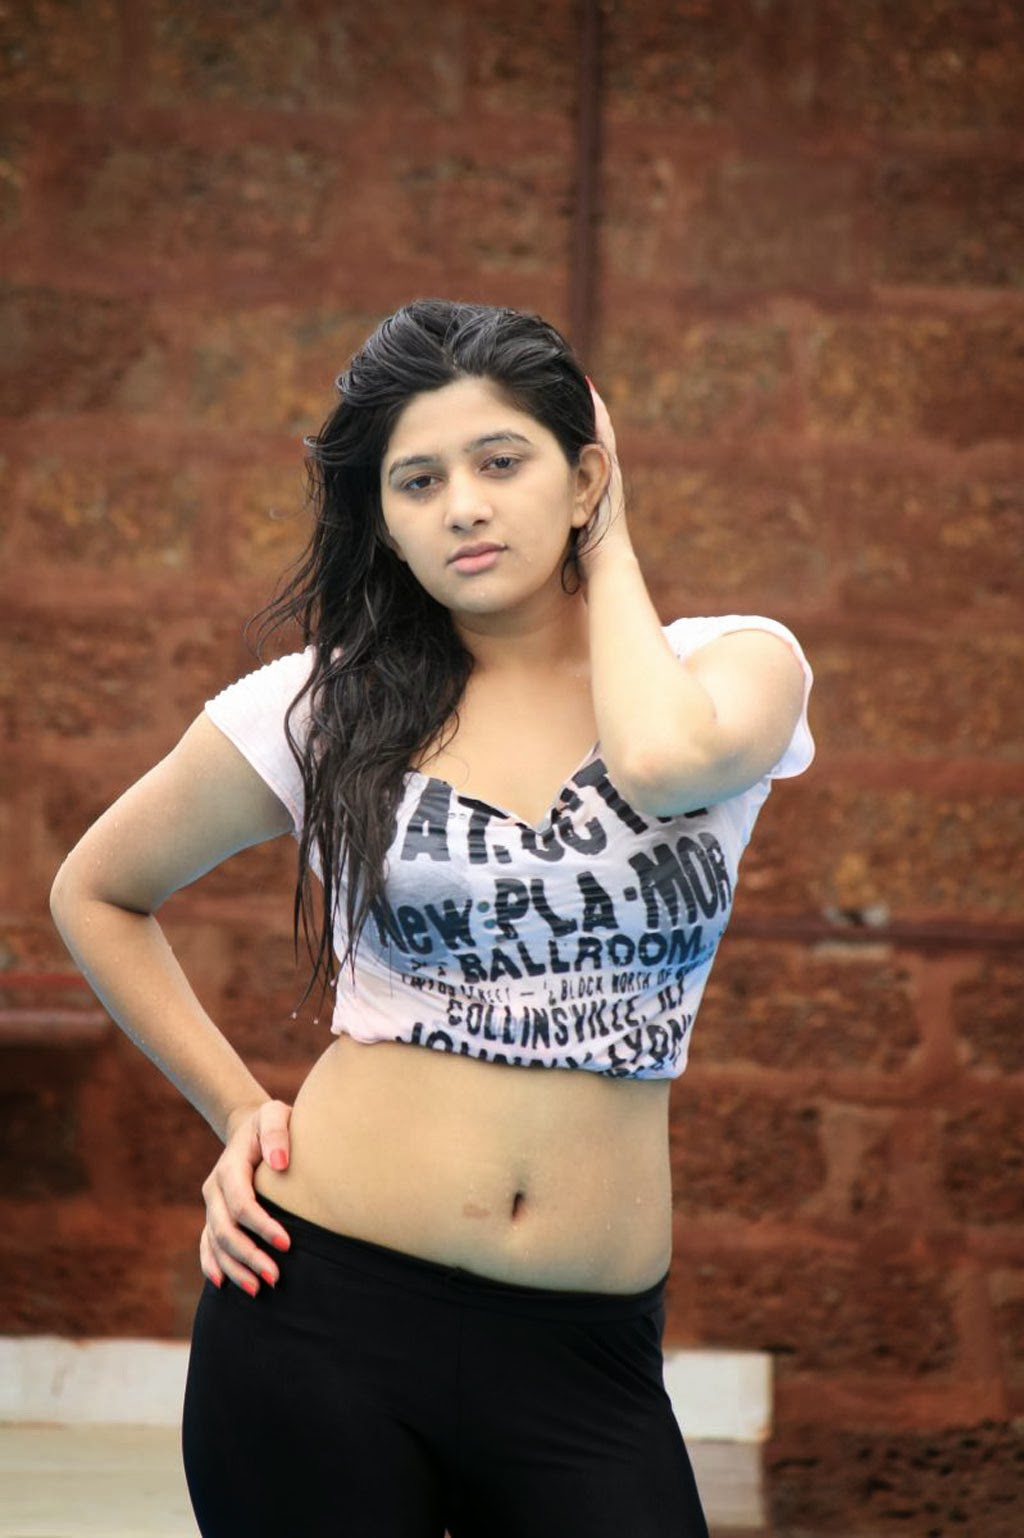 Monika singh hot wet photos from thoda adra sakka movie, Bollywood, Tollywood, pleasing, aesthetic, hot sexy actress sizzling, spicy, masala, curvy, pic collection, image gallery